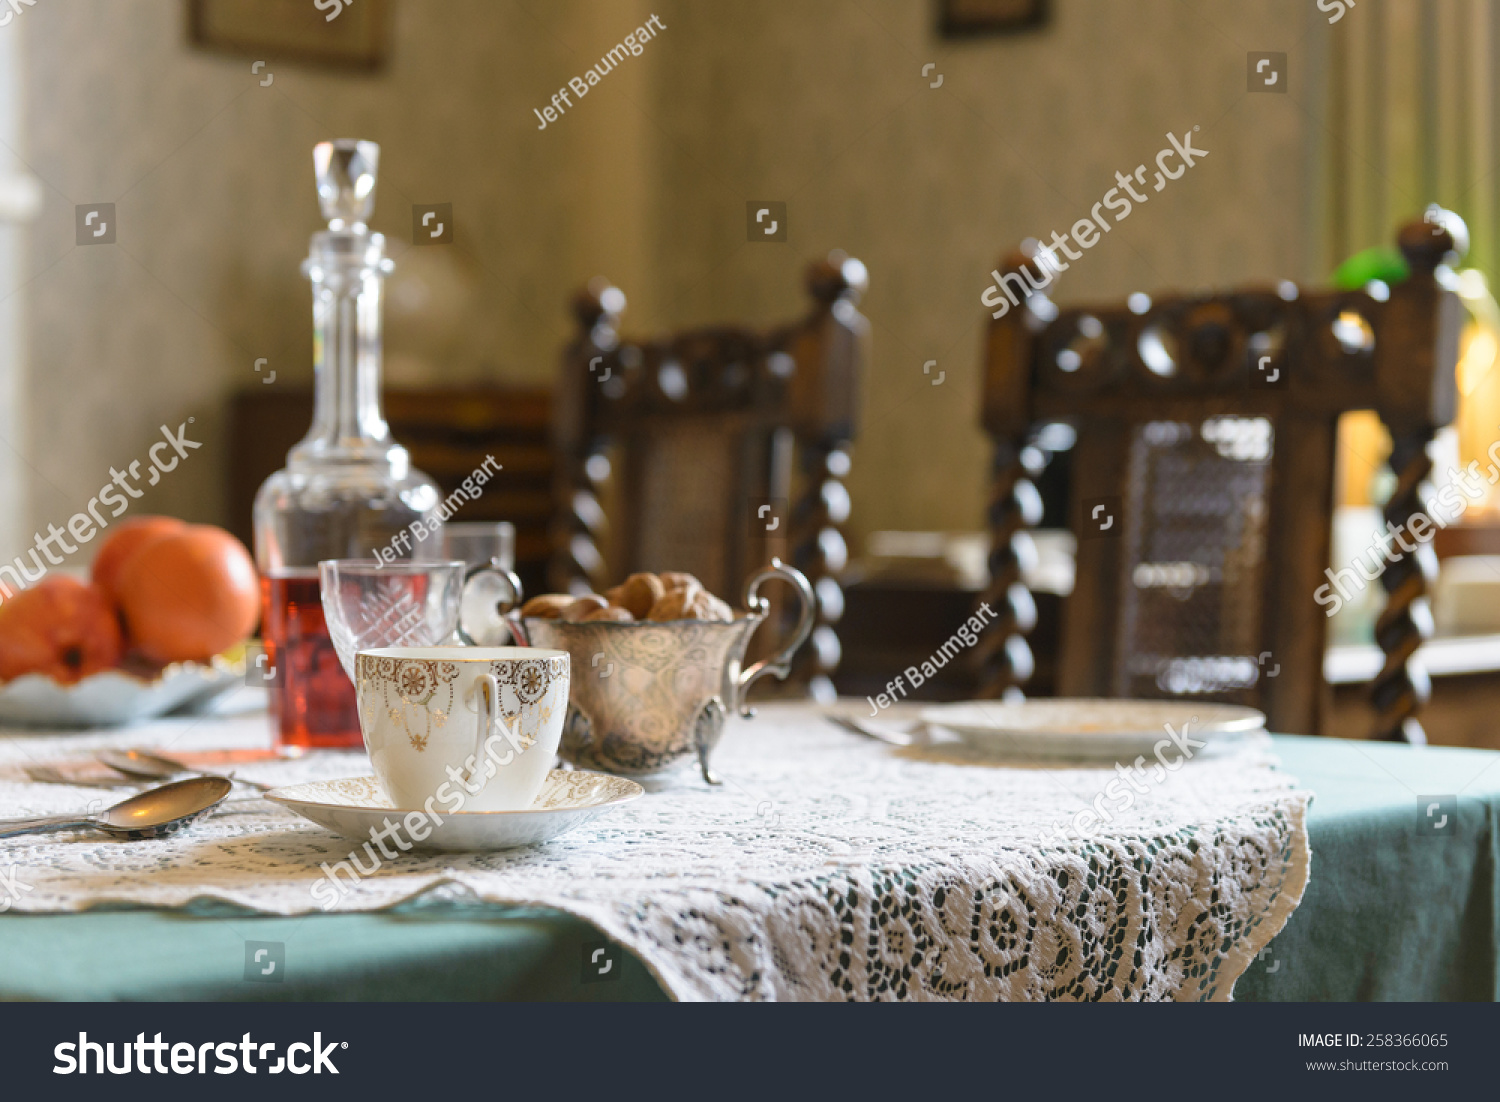 Vintage 1940 S Interior English Table Setting Stock Photo (Royalty Free) 258366065 - Shutterstock & Vintage 1940 S Interior English Table Setting Stock Photo (Royalty ...